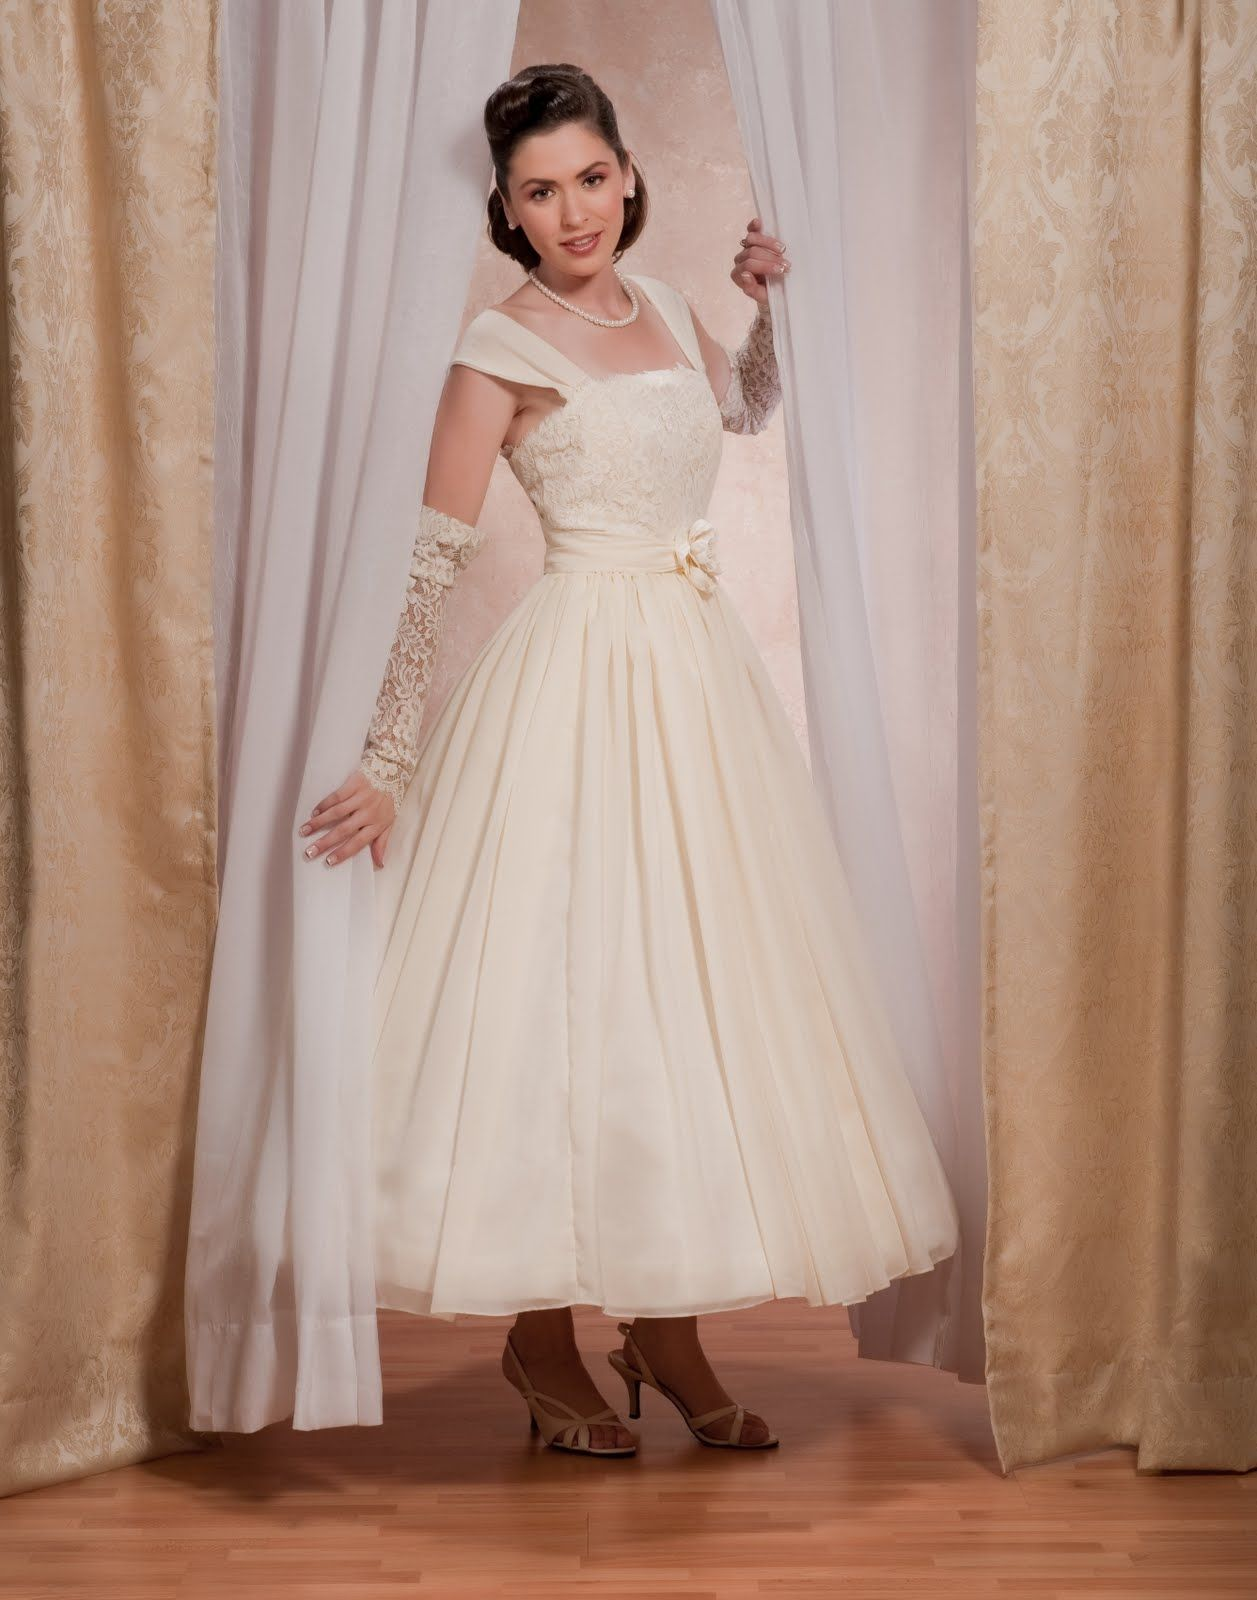 1950s wedding dress - lace gauntlets instead of gloves - can't put